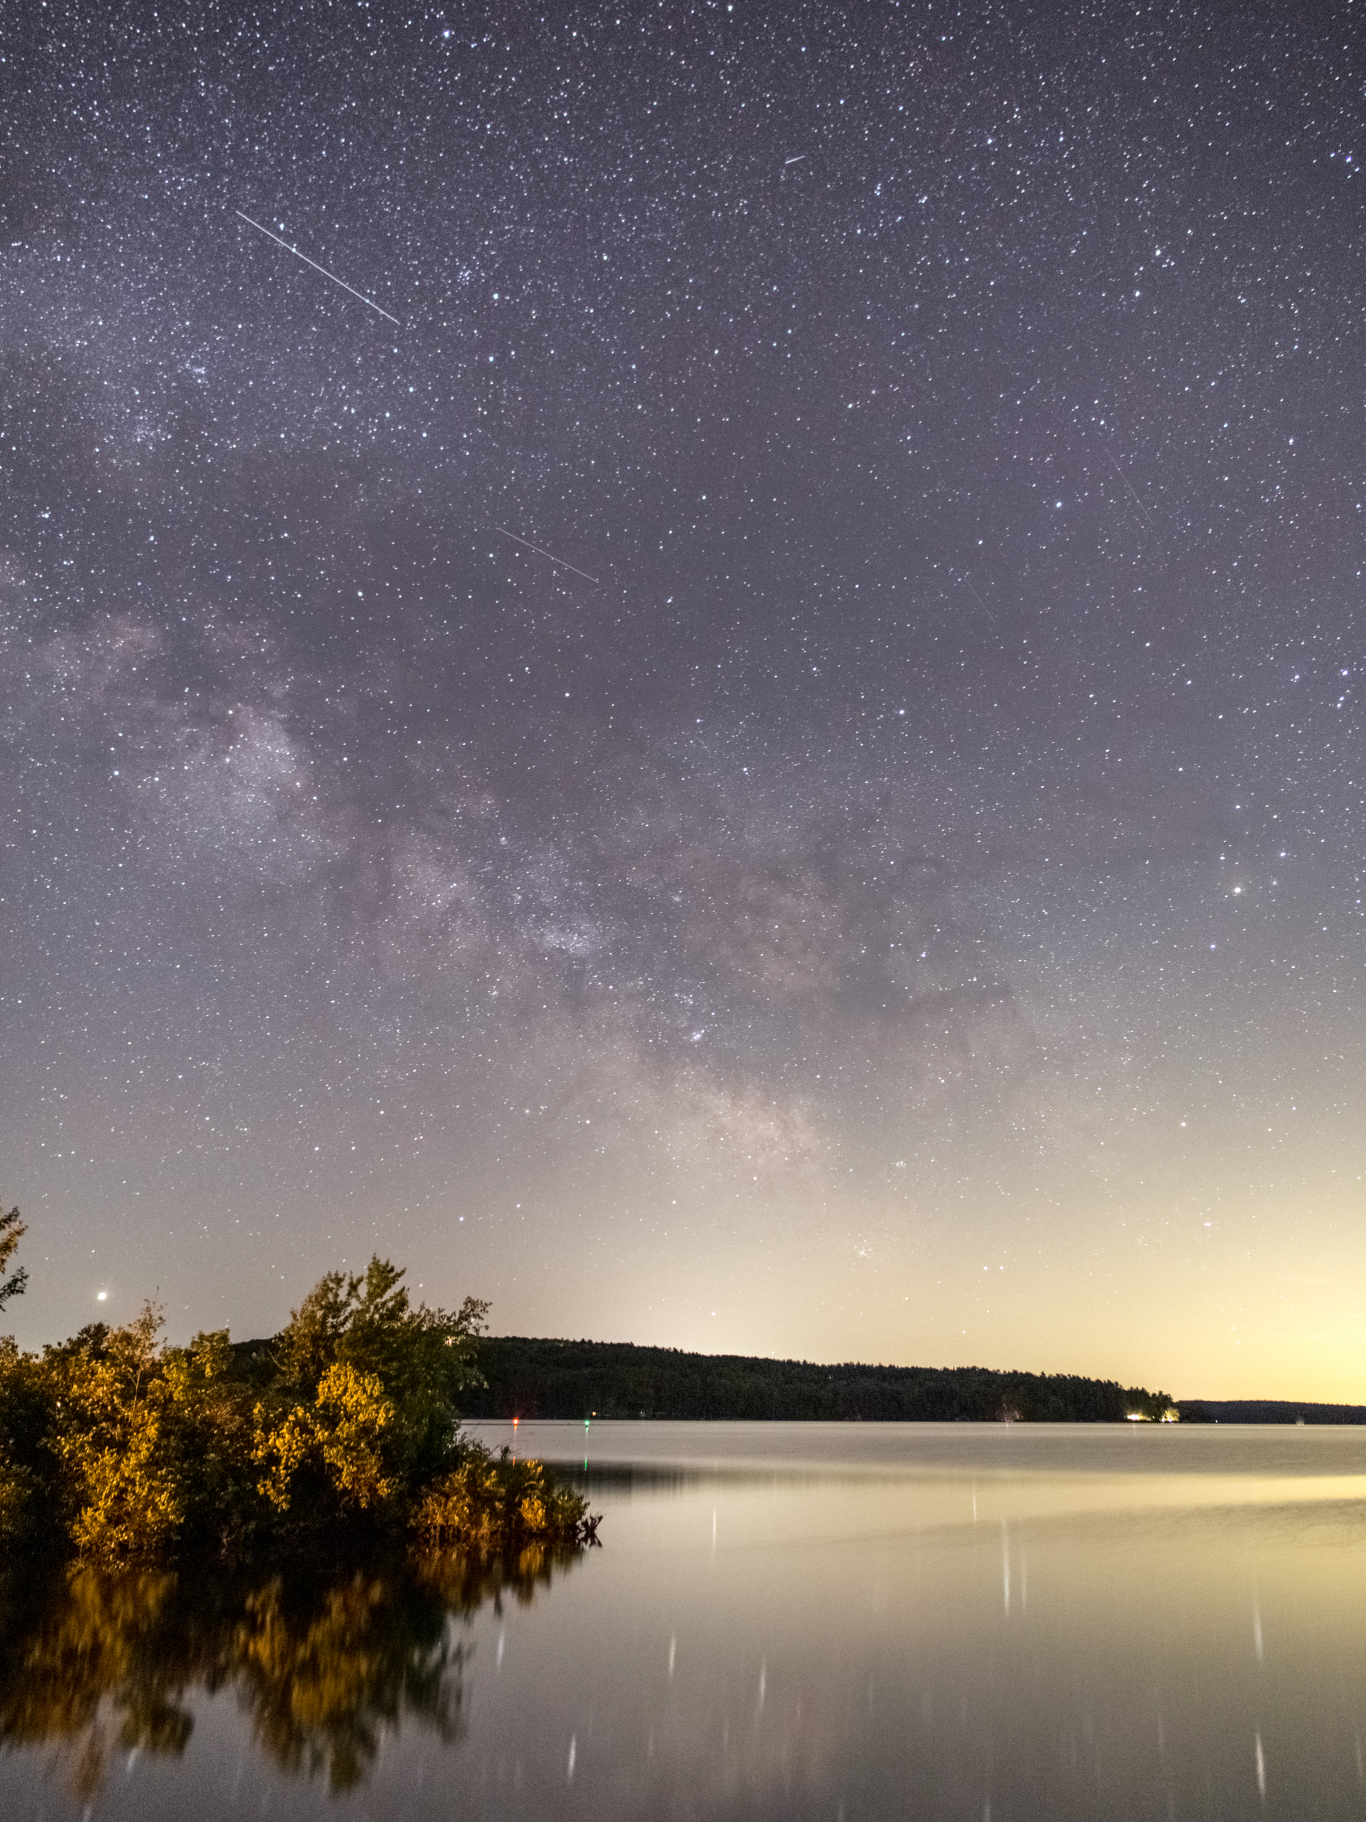 Milky Way with a Calm Lake